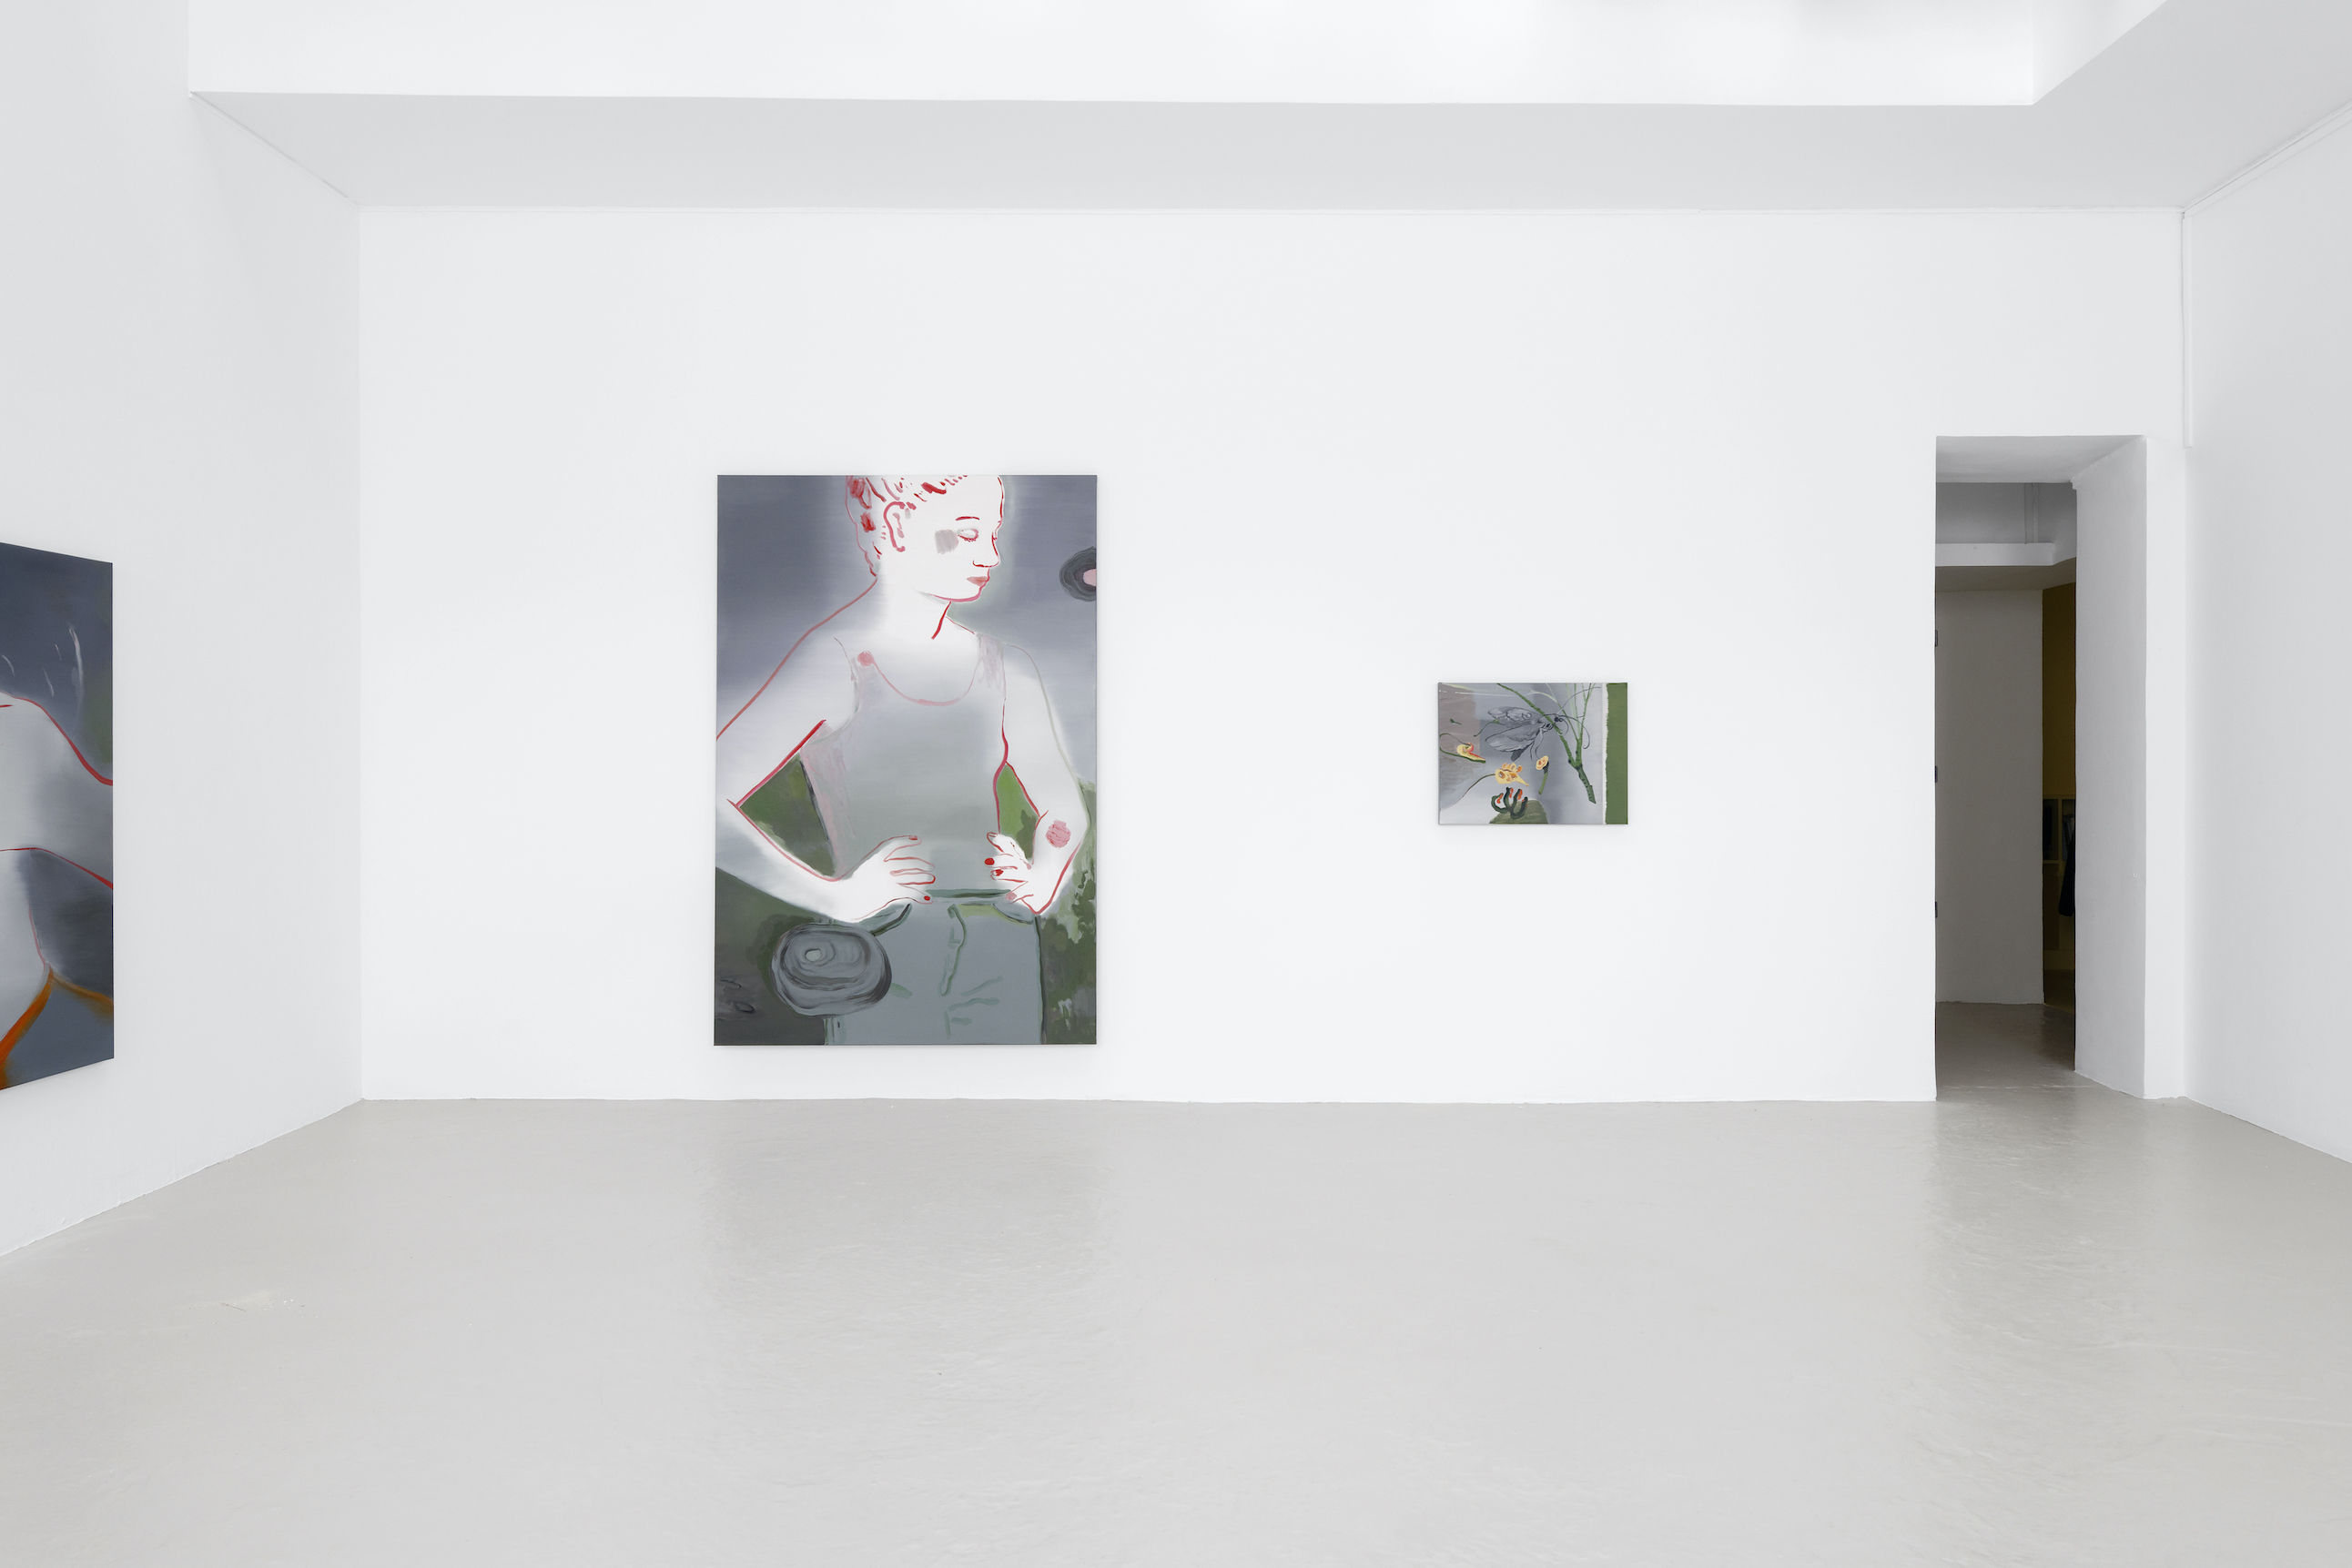 Installation view 4, Forget Me Not, 2020, Courtesy of the artist and Semiose